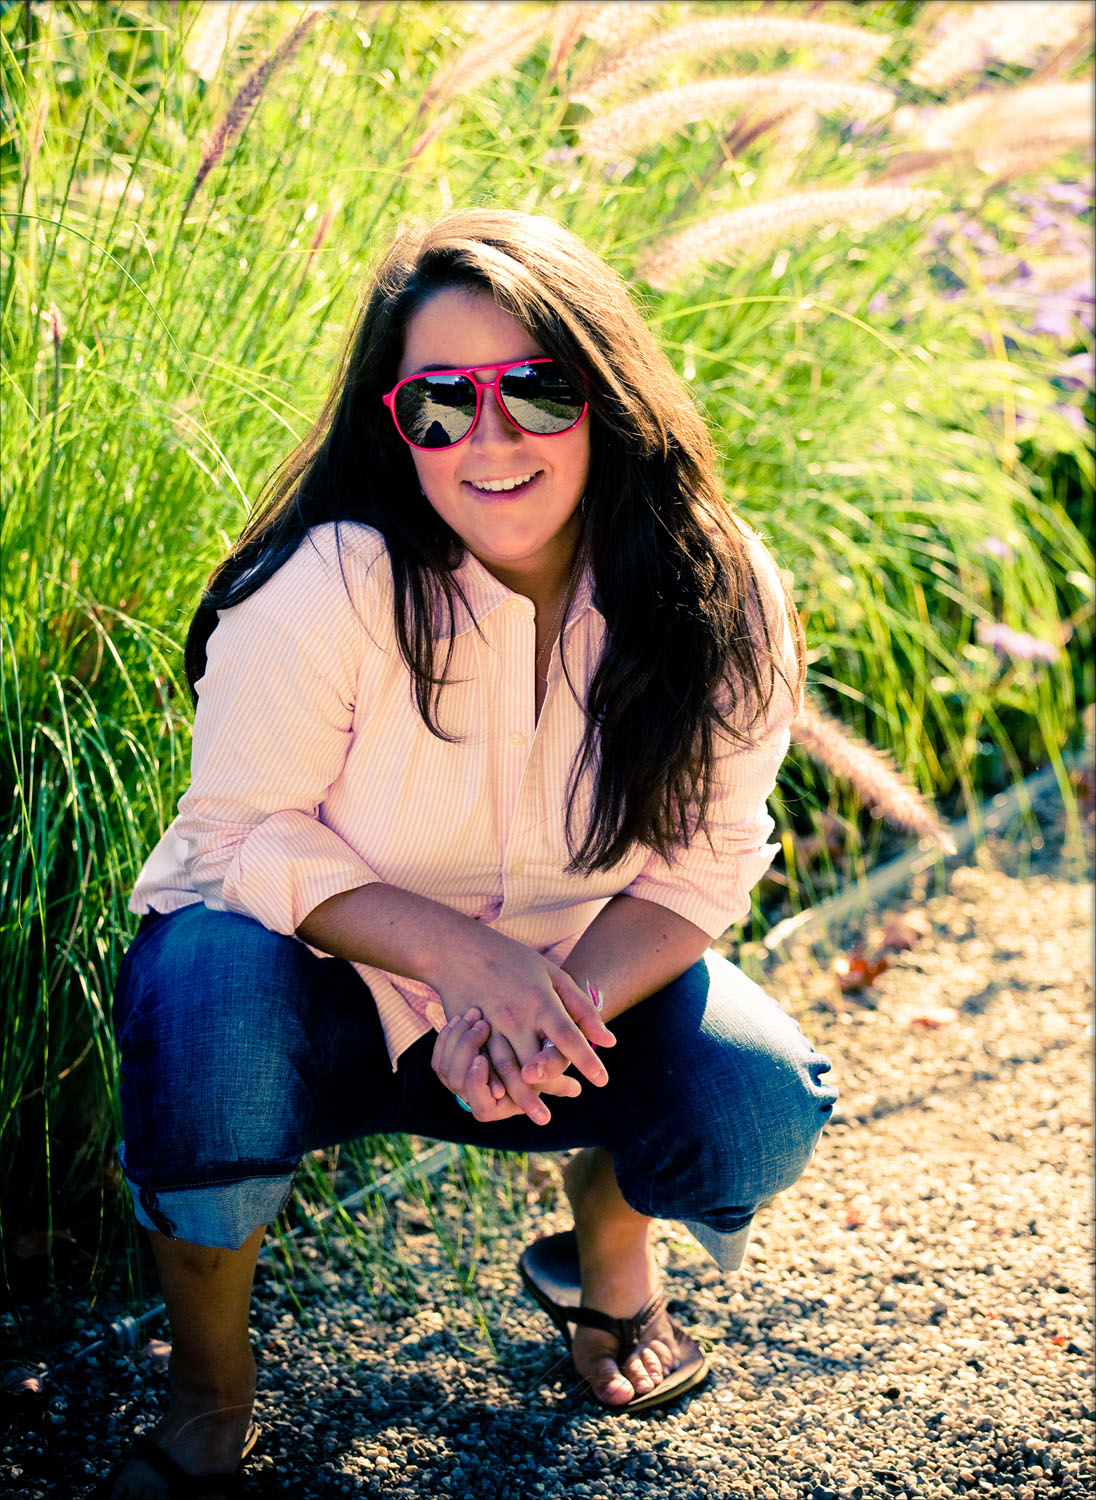 senior girl with red sunglasses in park in portland, maine for photo shoot